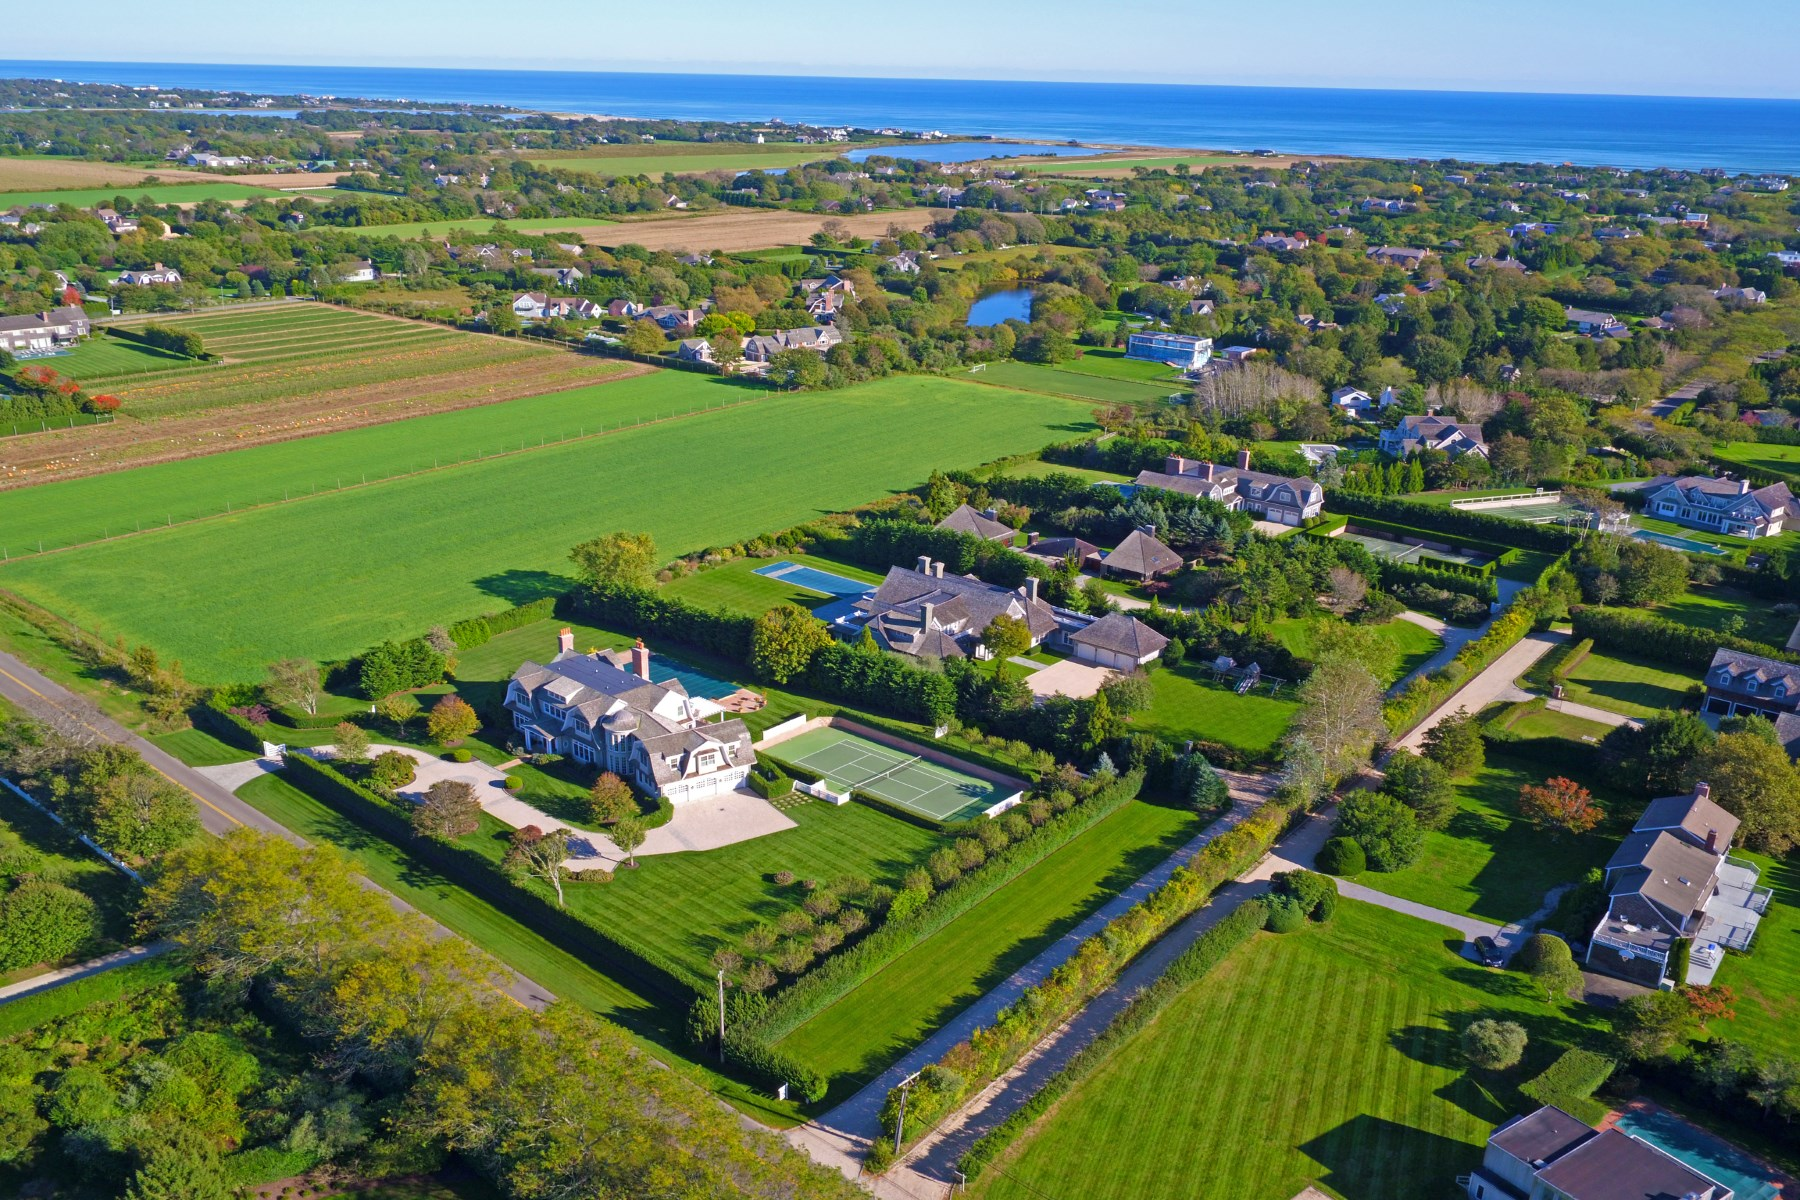 Single Family Home for Rent at Sagaponack Minutes To Ocean With Tennis 515 Parsonage Lane Sagaponack, New York 11932 United States